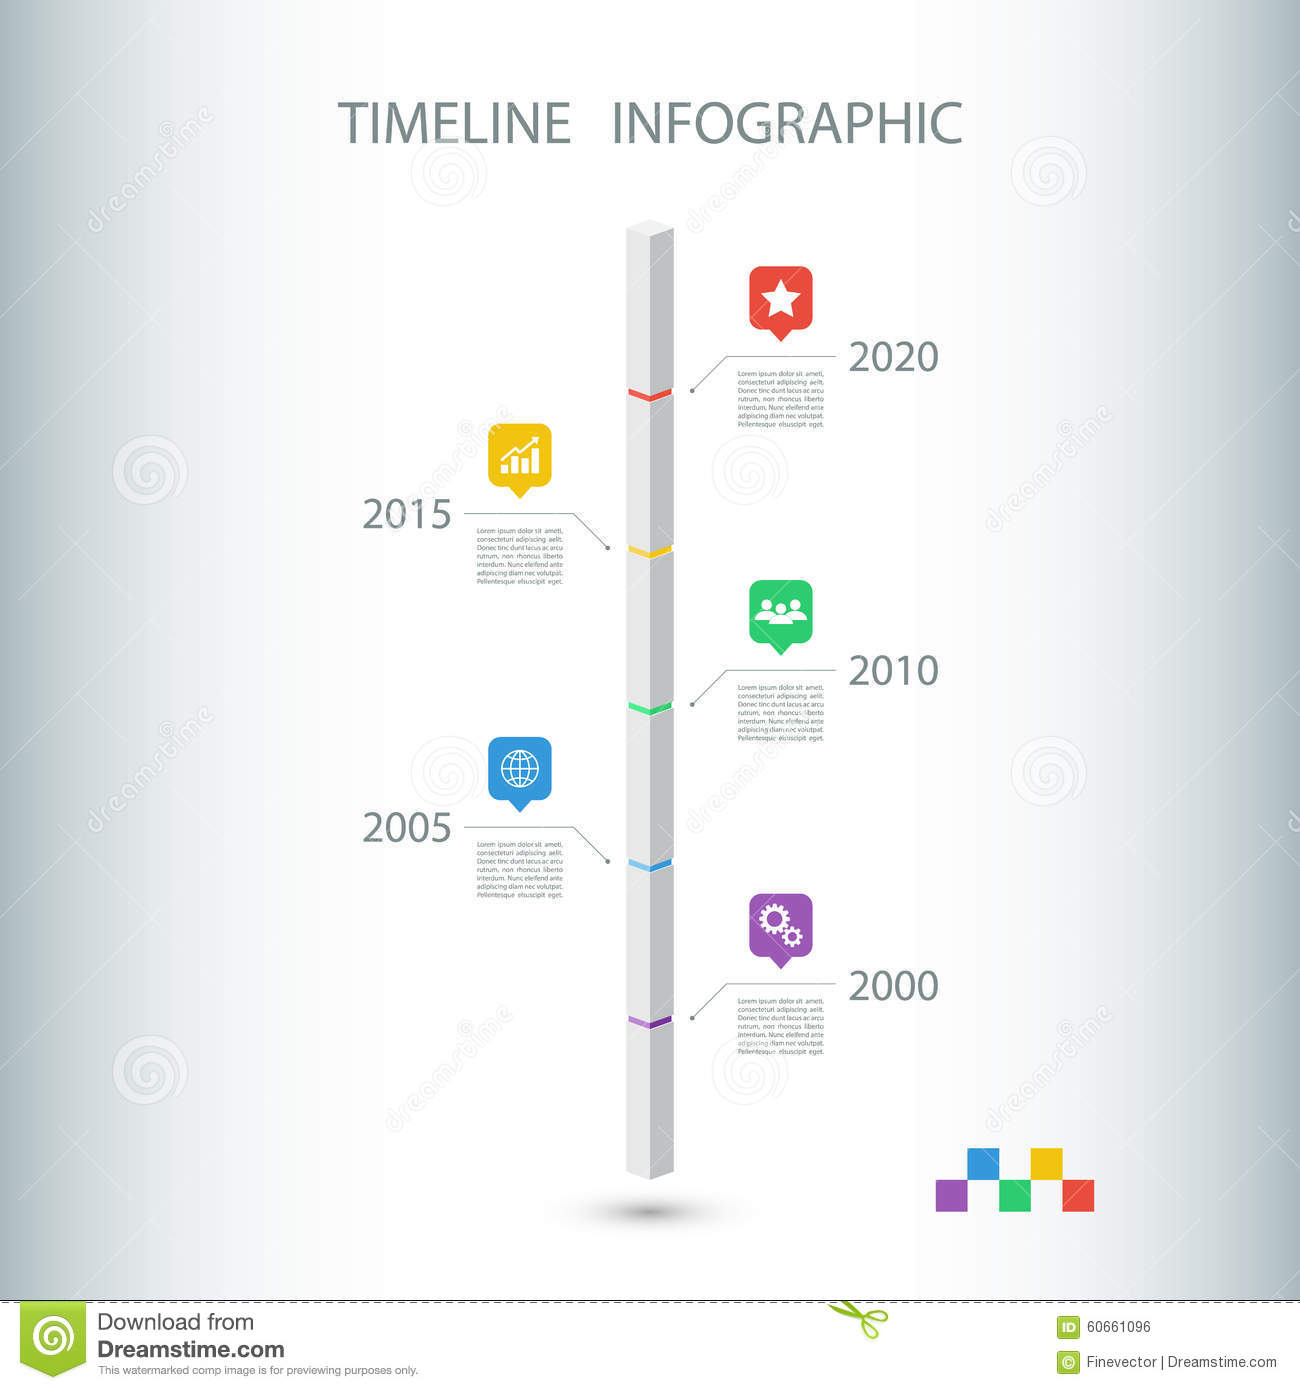 How to Create a Timeline Infographic in 6 Easy Steps